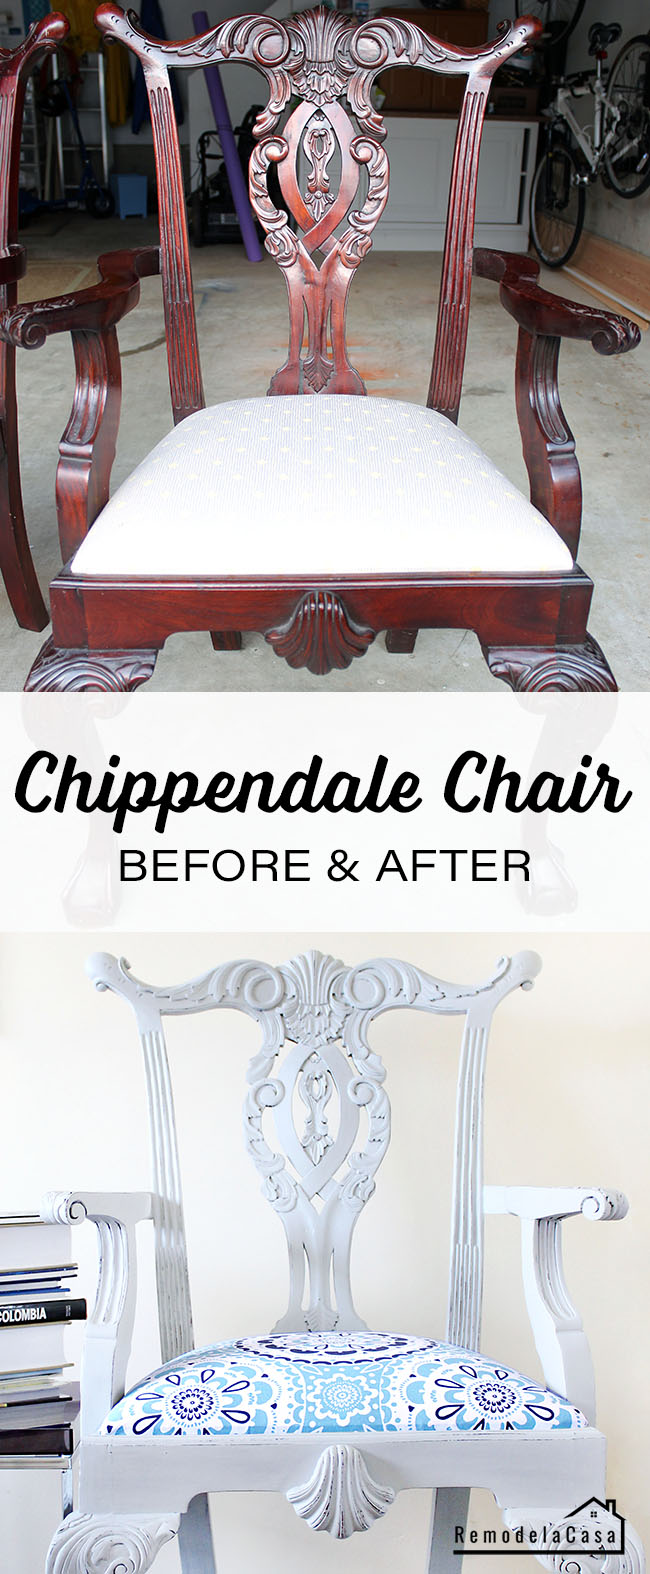 Before and after of Chippendale chair